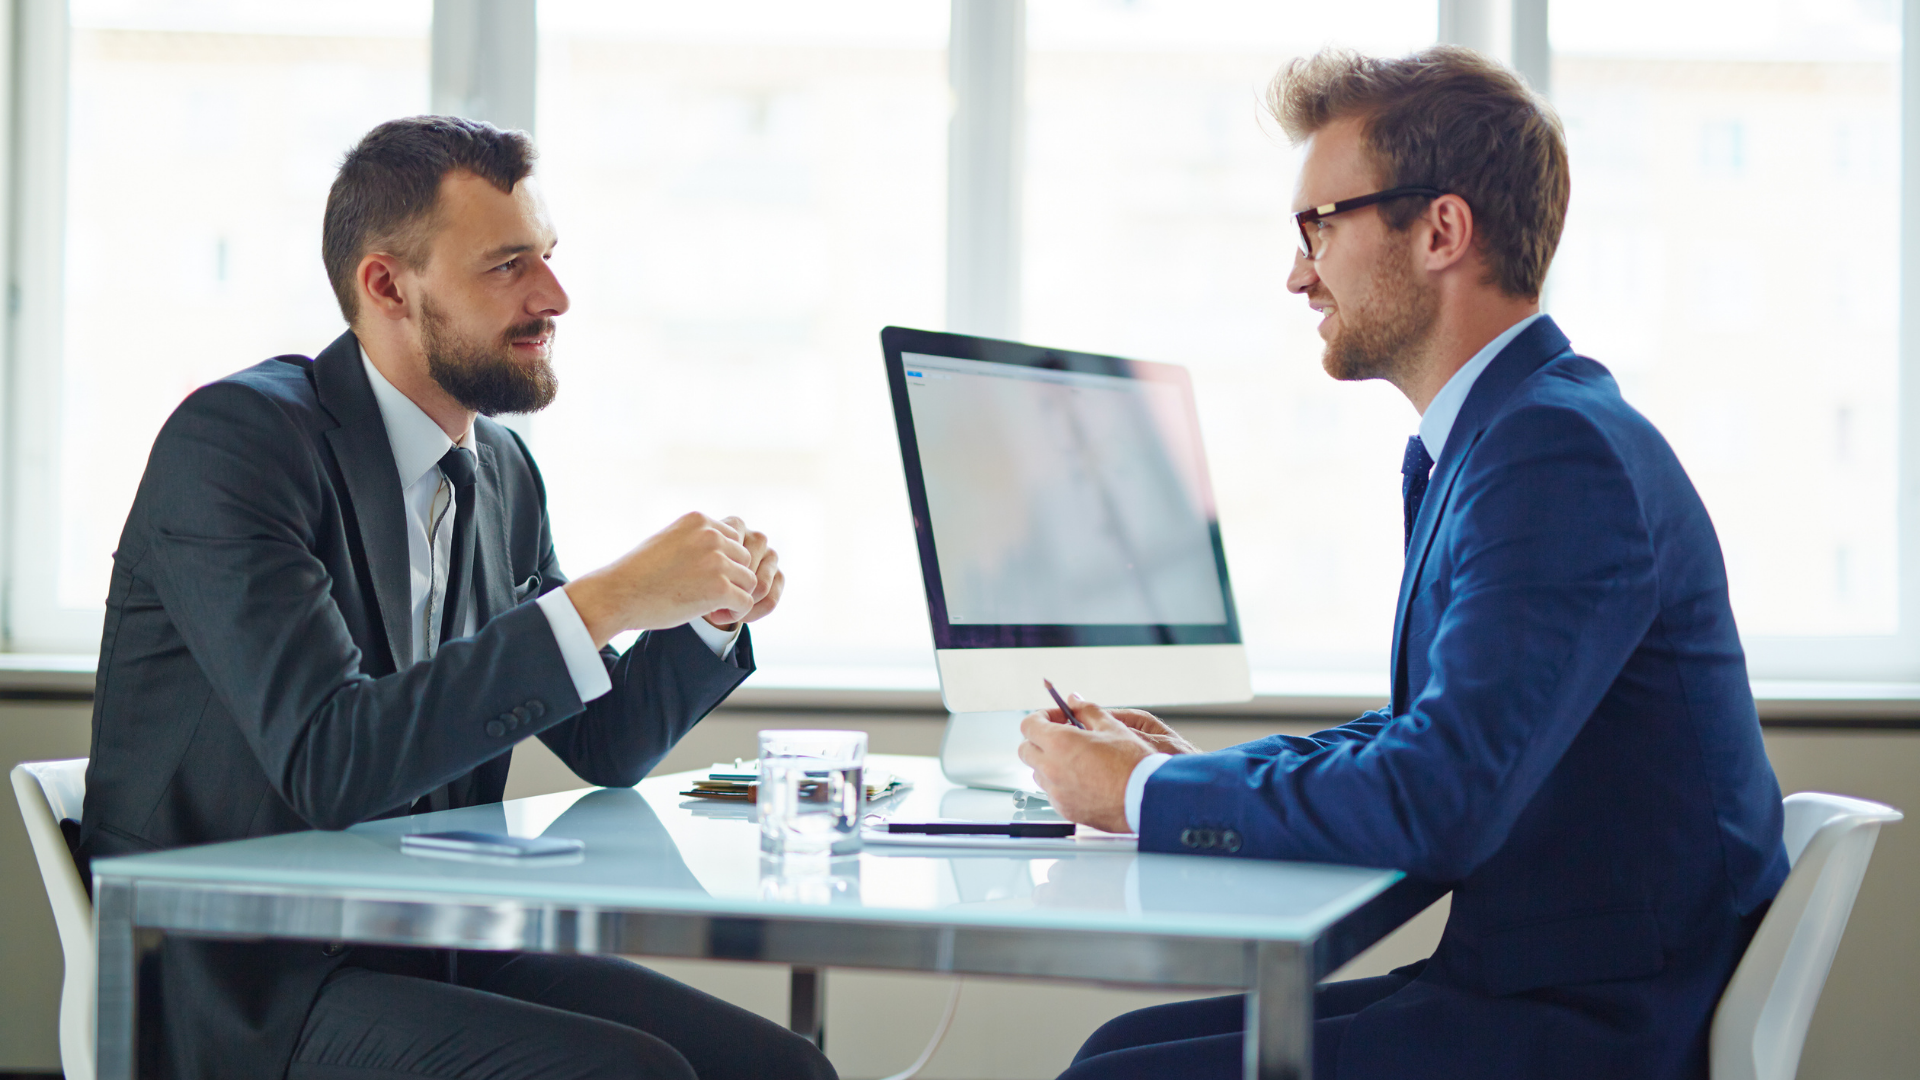 How To Make Small Talk Before Your Interview